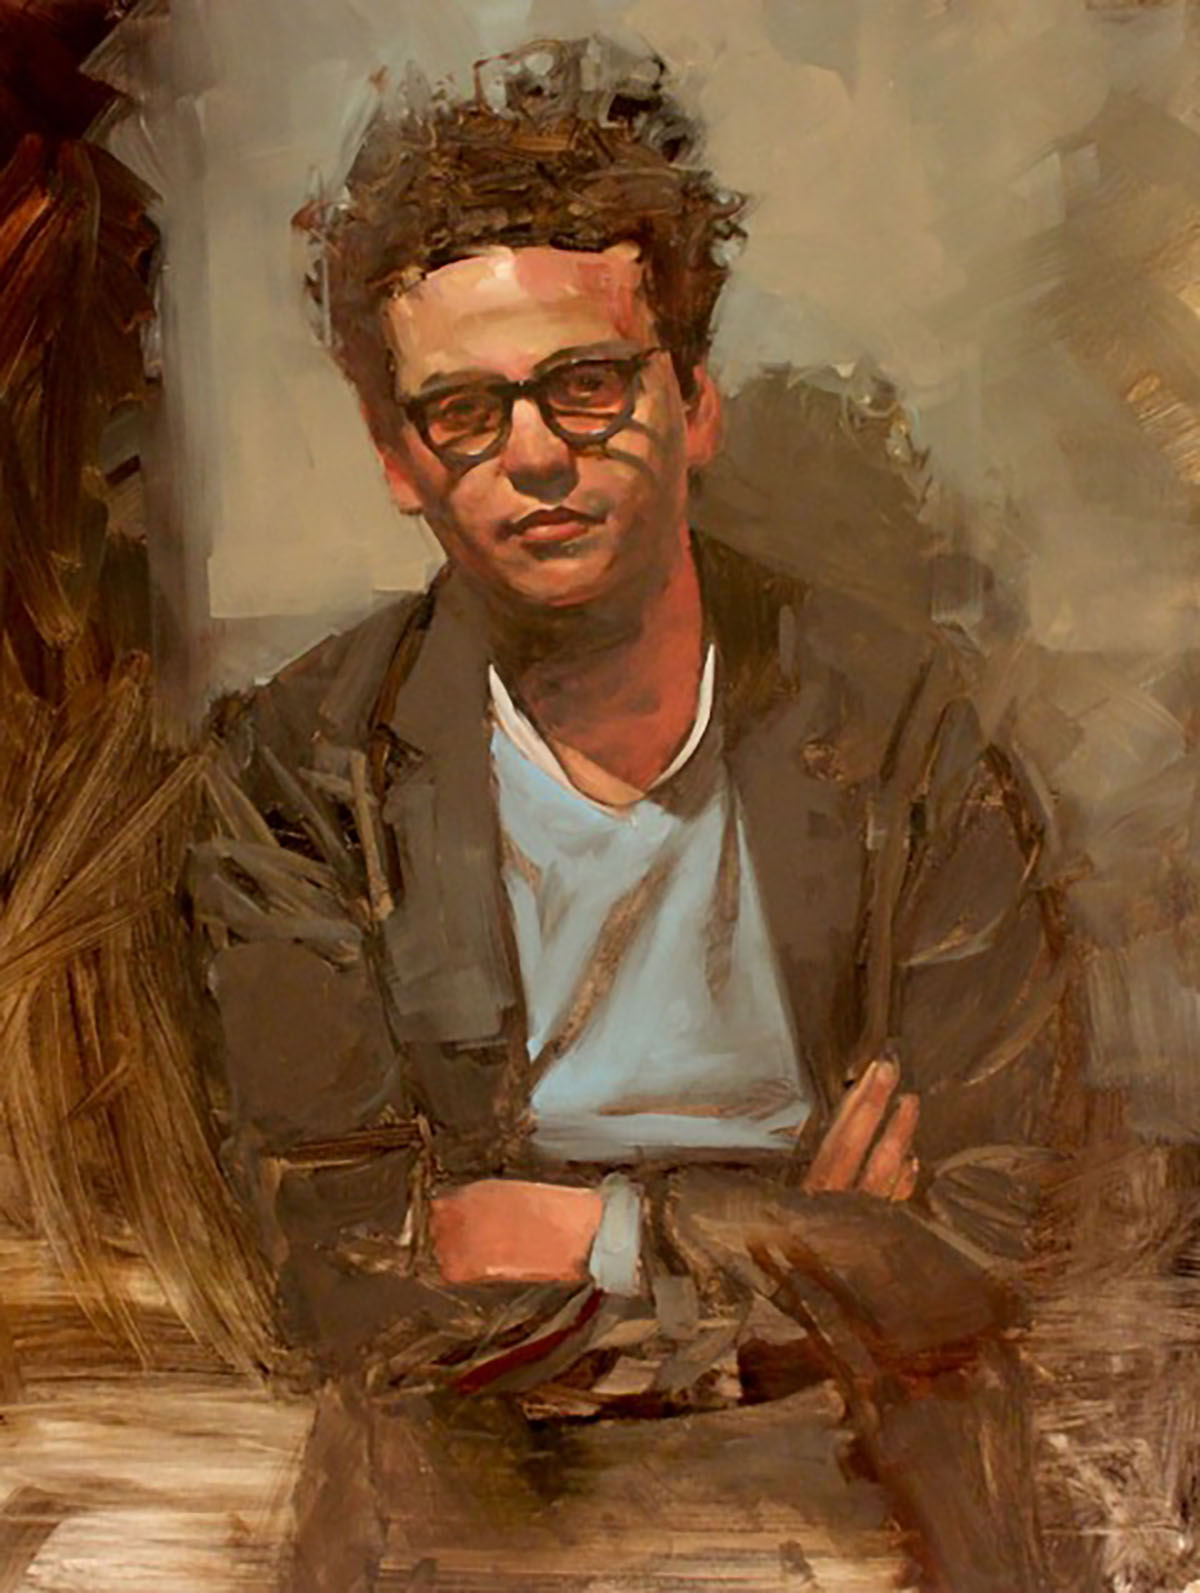 Georges Berges, portrait by Michael Carson